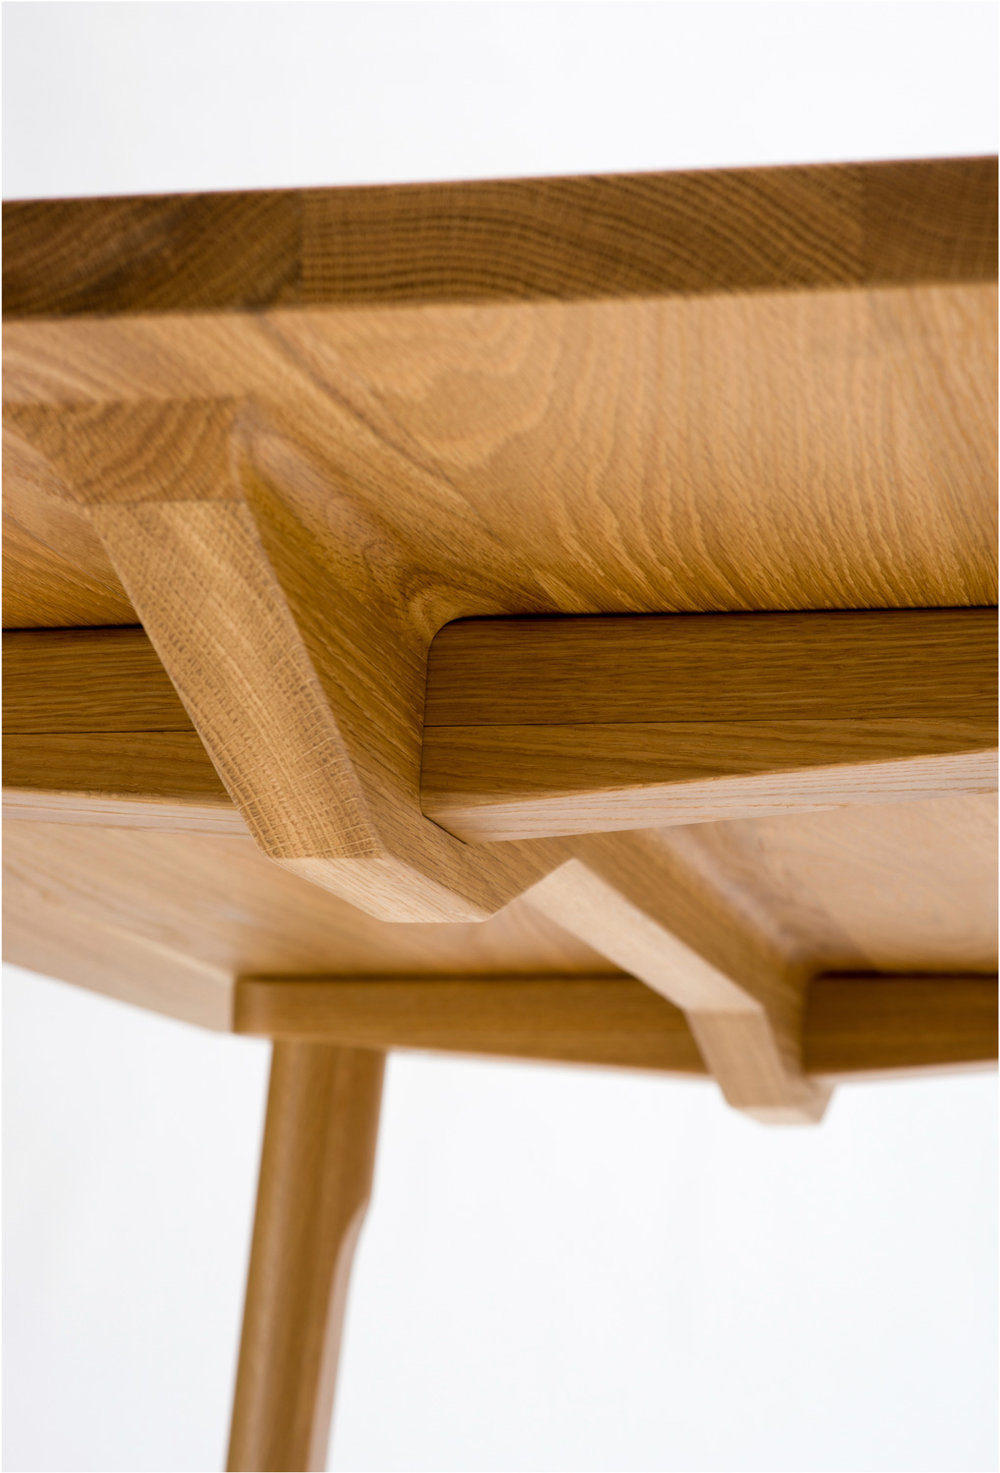 Ariake_Furniture_Detail_2_lowres.jpg